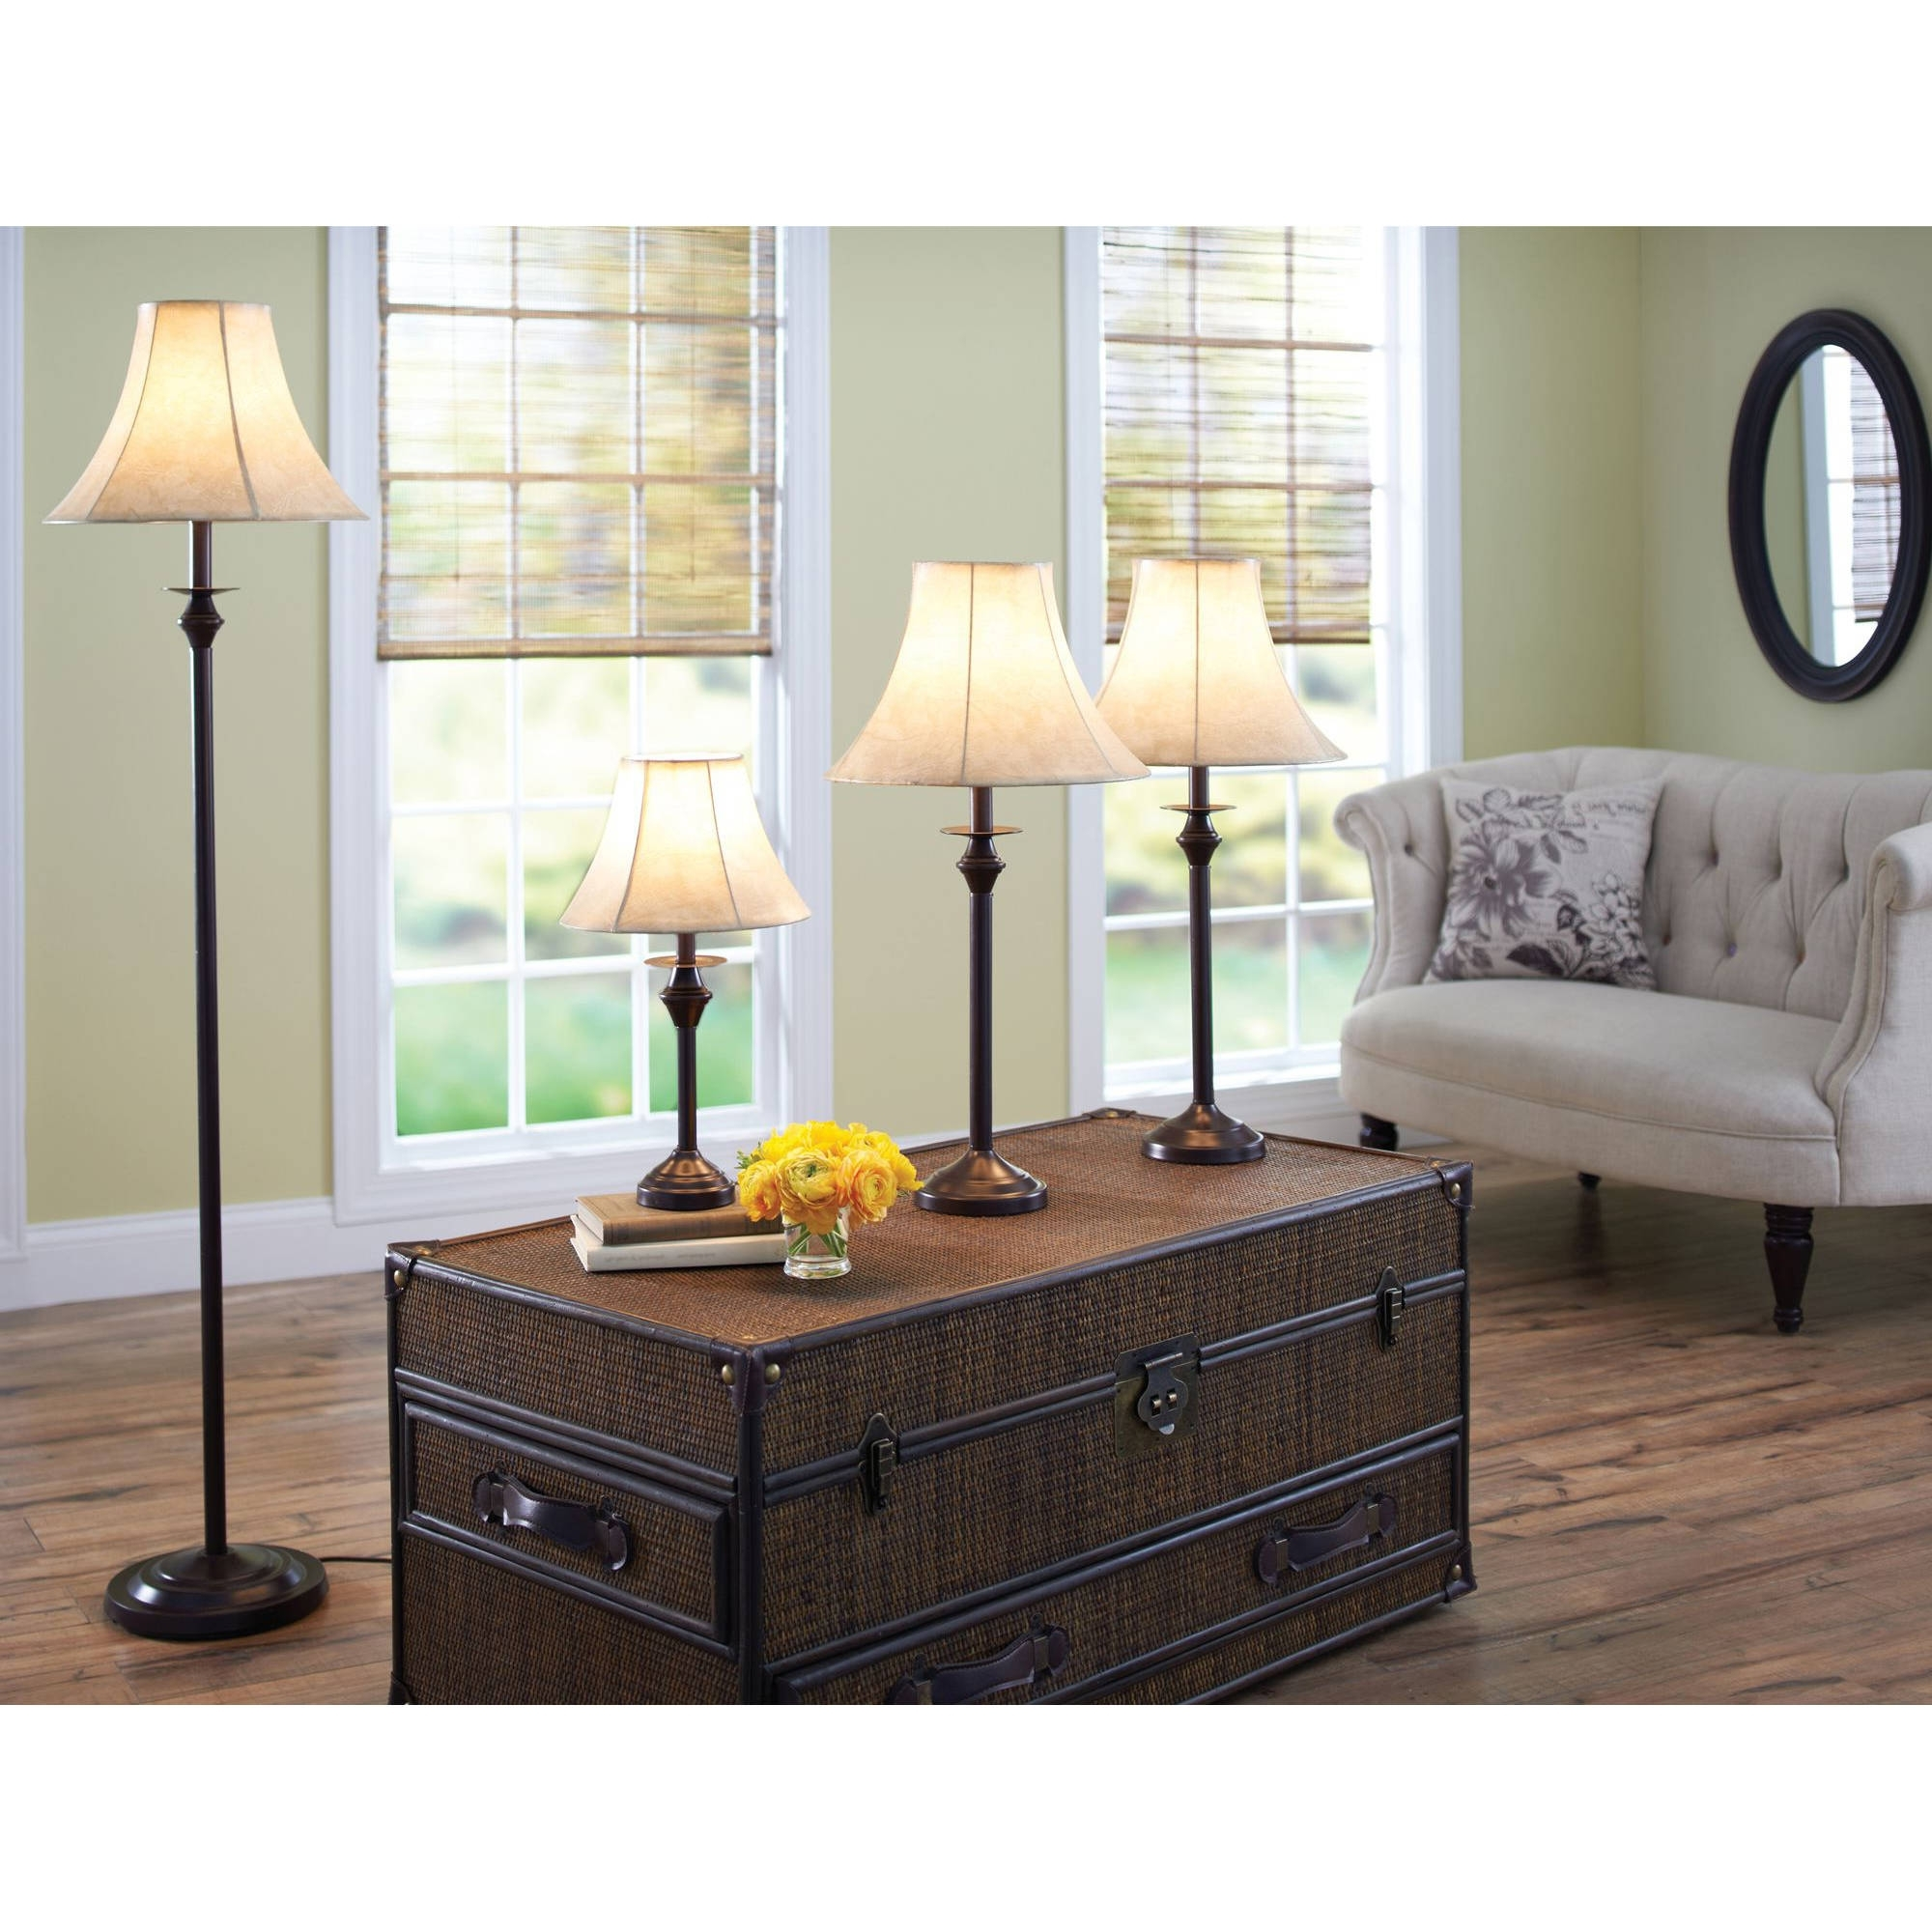 Living Room Table Lamps Sets In 2017 47 Table Lamp Sets Living Room, Table Floor Lamp Set Vintage Bronze (View 10 of 15)